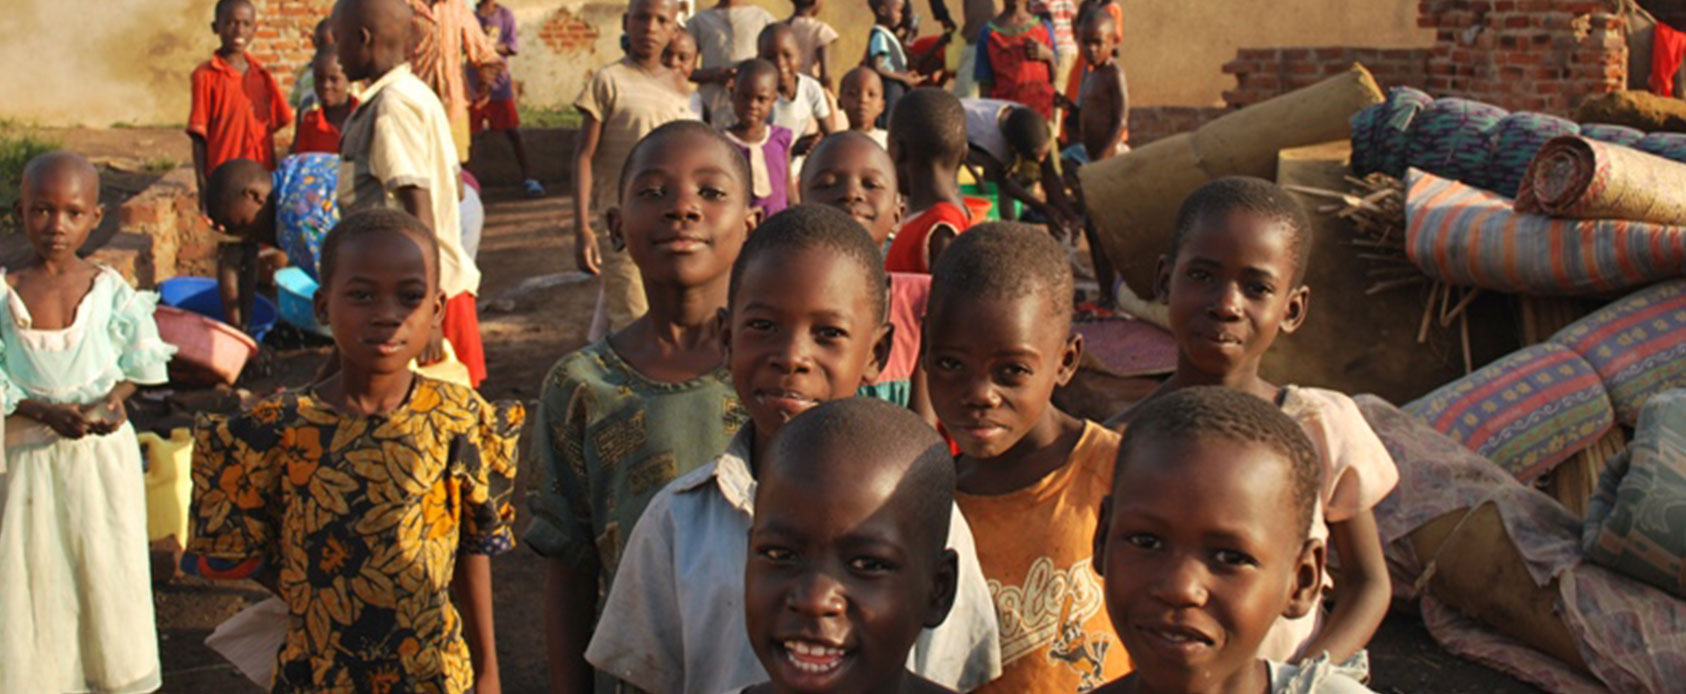 children living in an orphanage uganda